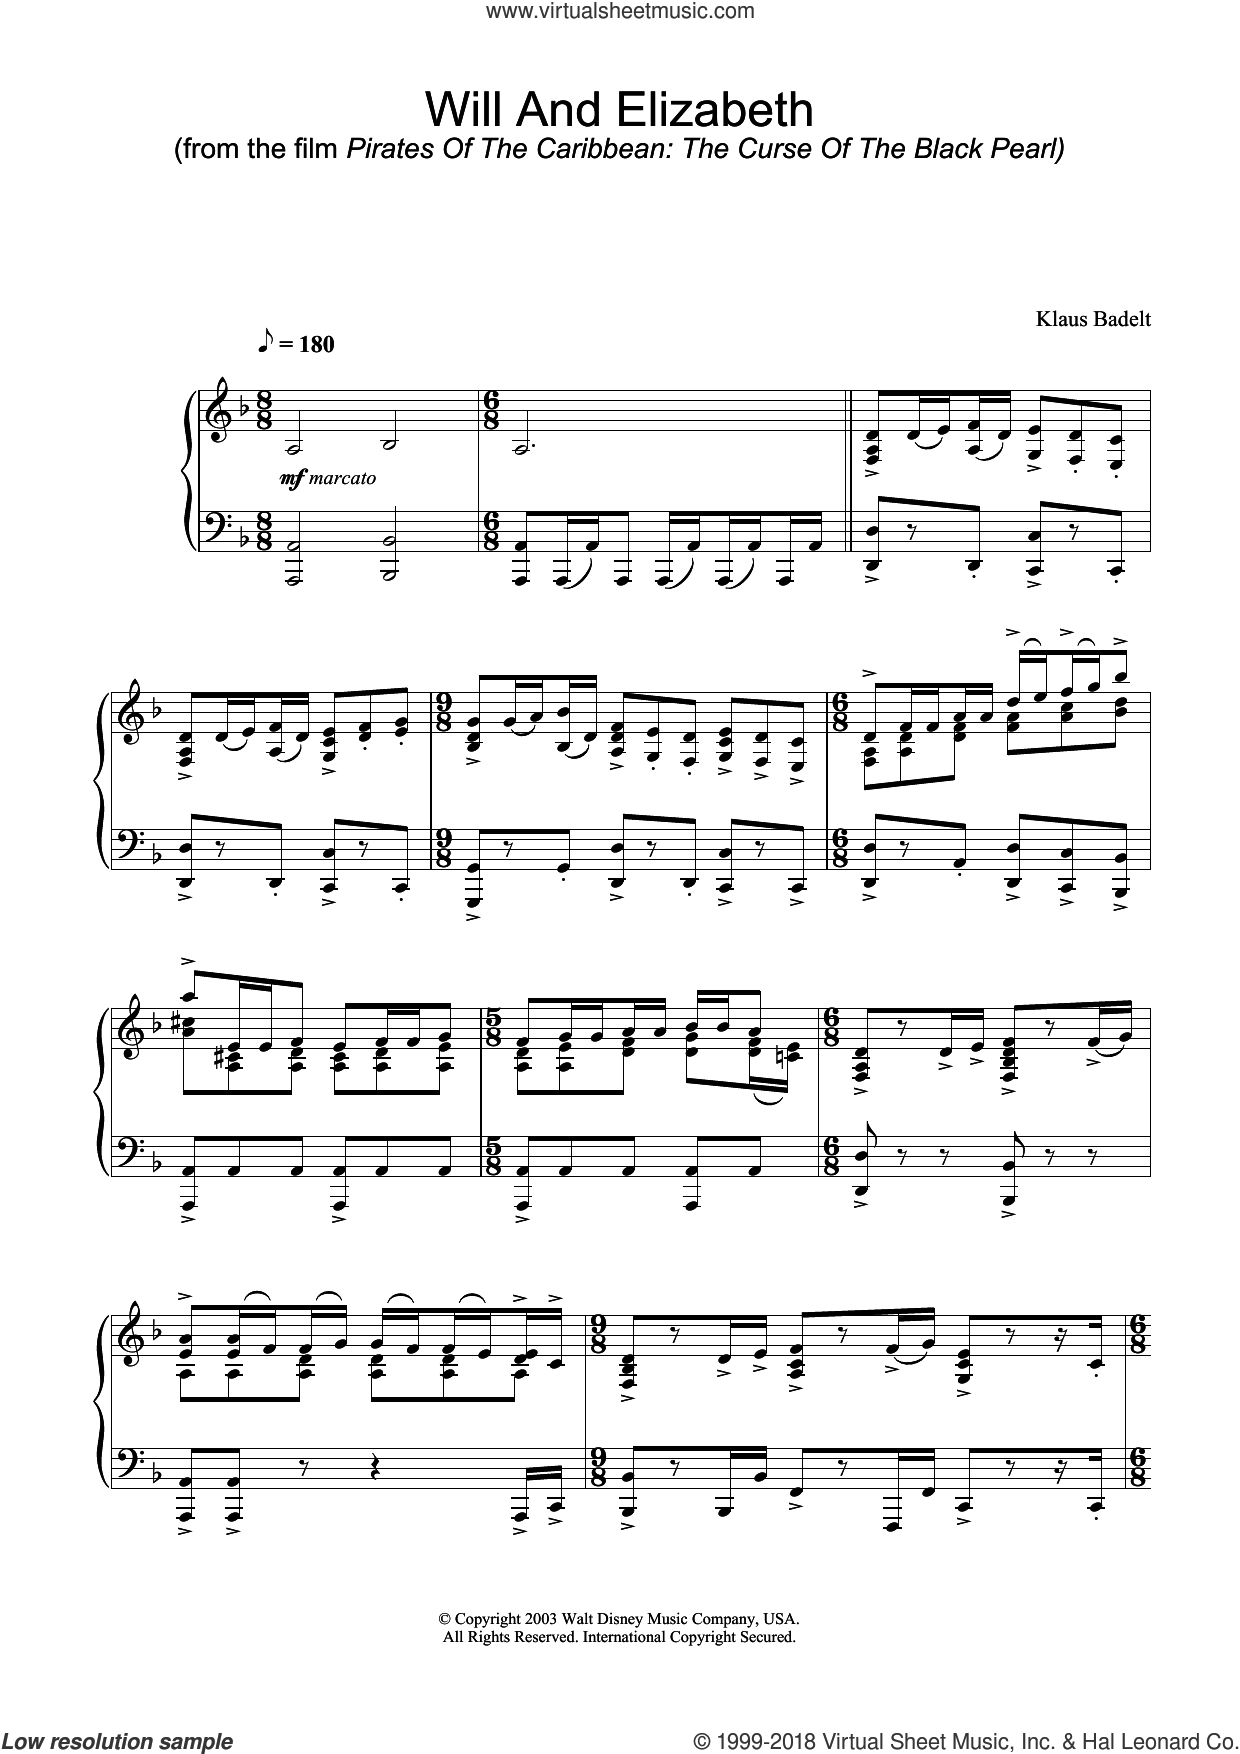 The Curse Of The Black Pearl: Will And Elizabeth sheet music for piano solo by Klaus Badelt. Score Image Preview.